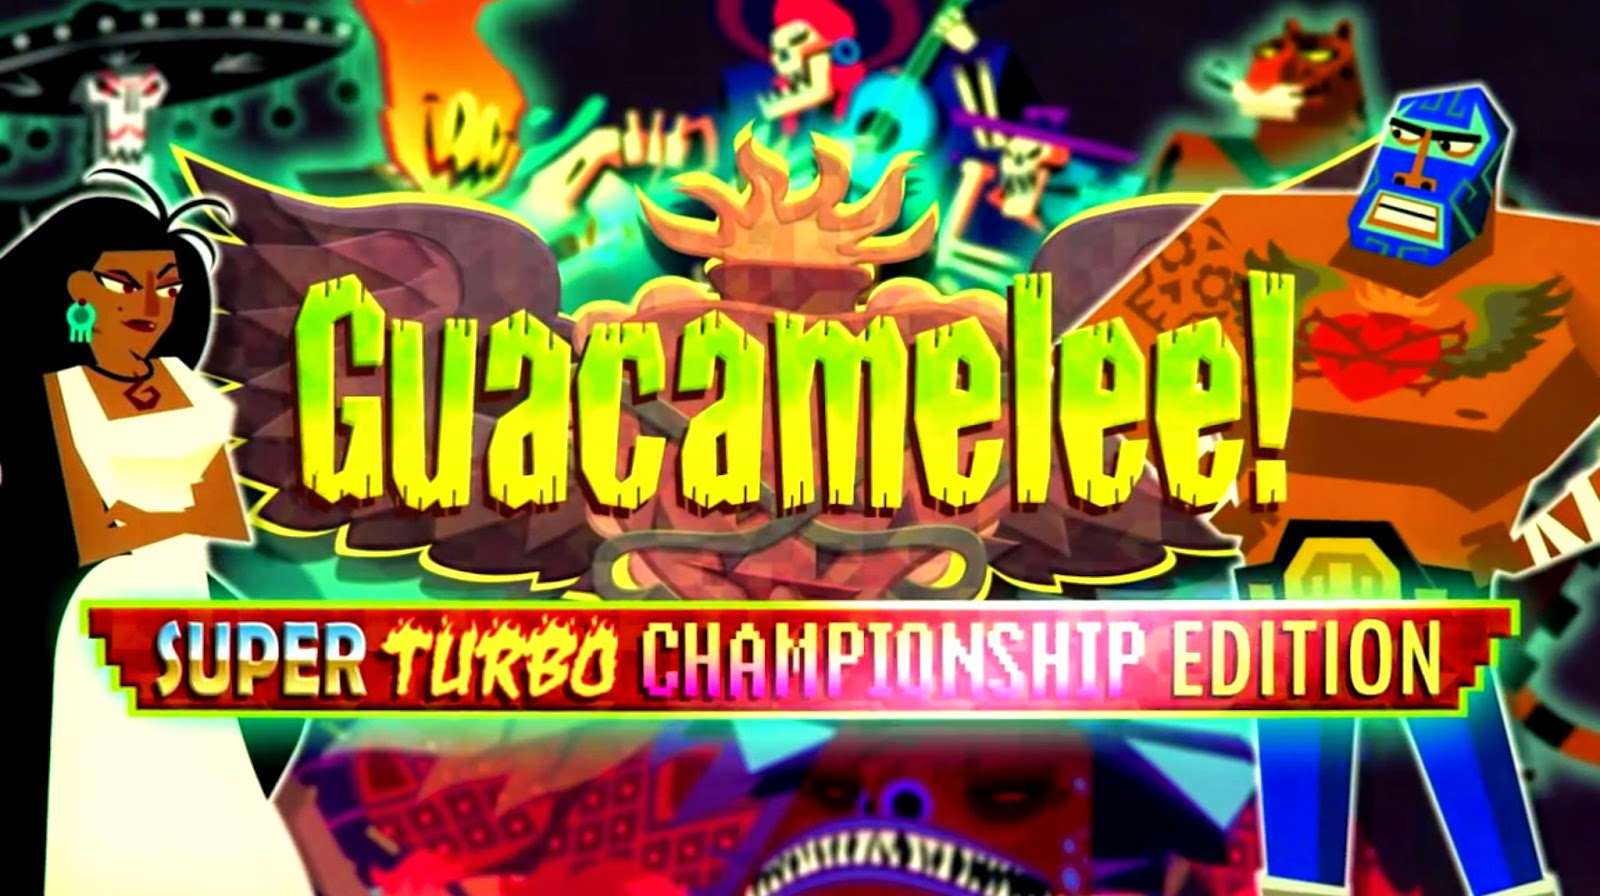 Guacamelee! Super Turbo Championship Edition (Wii U eShop) Review